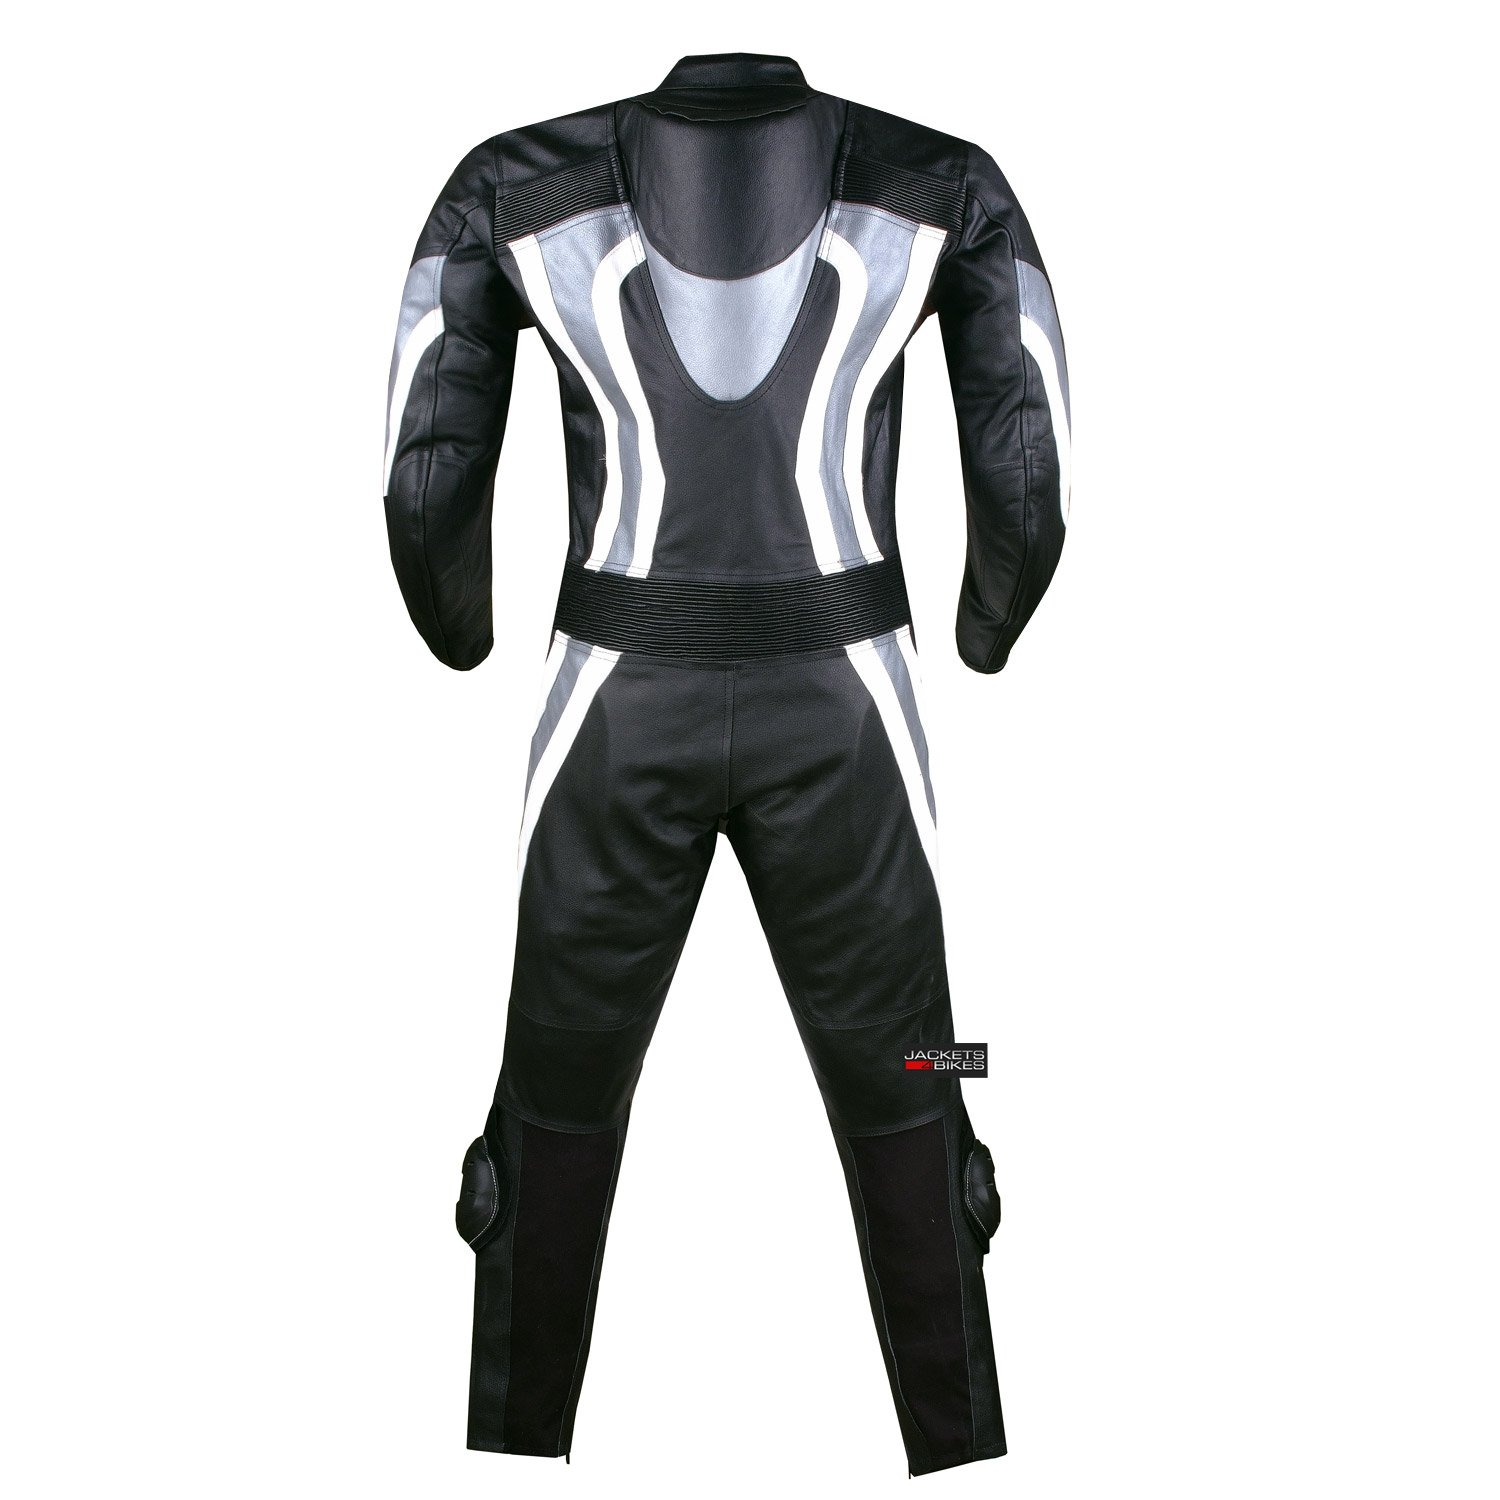 New 1PC One-Piece Armor Leather Motorcycle Racing Suit Silver w/Hump US Size 40 by Jackets 4 Bikes (Image #3)